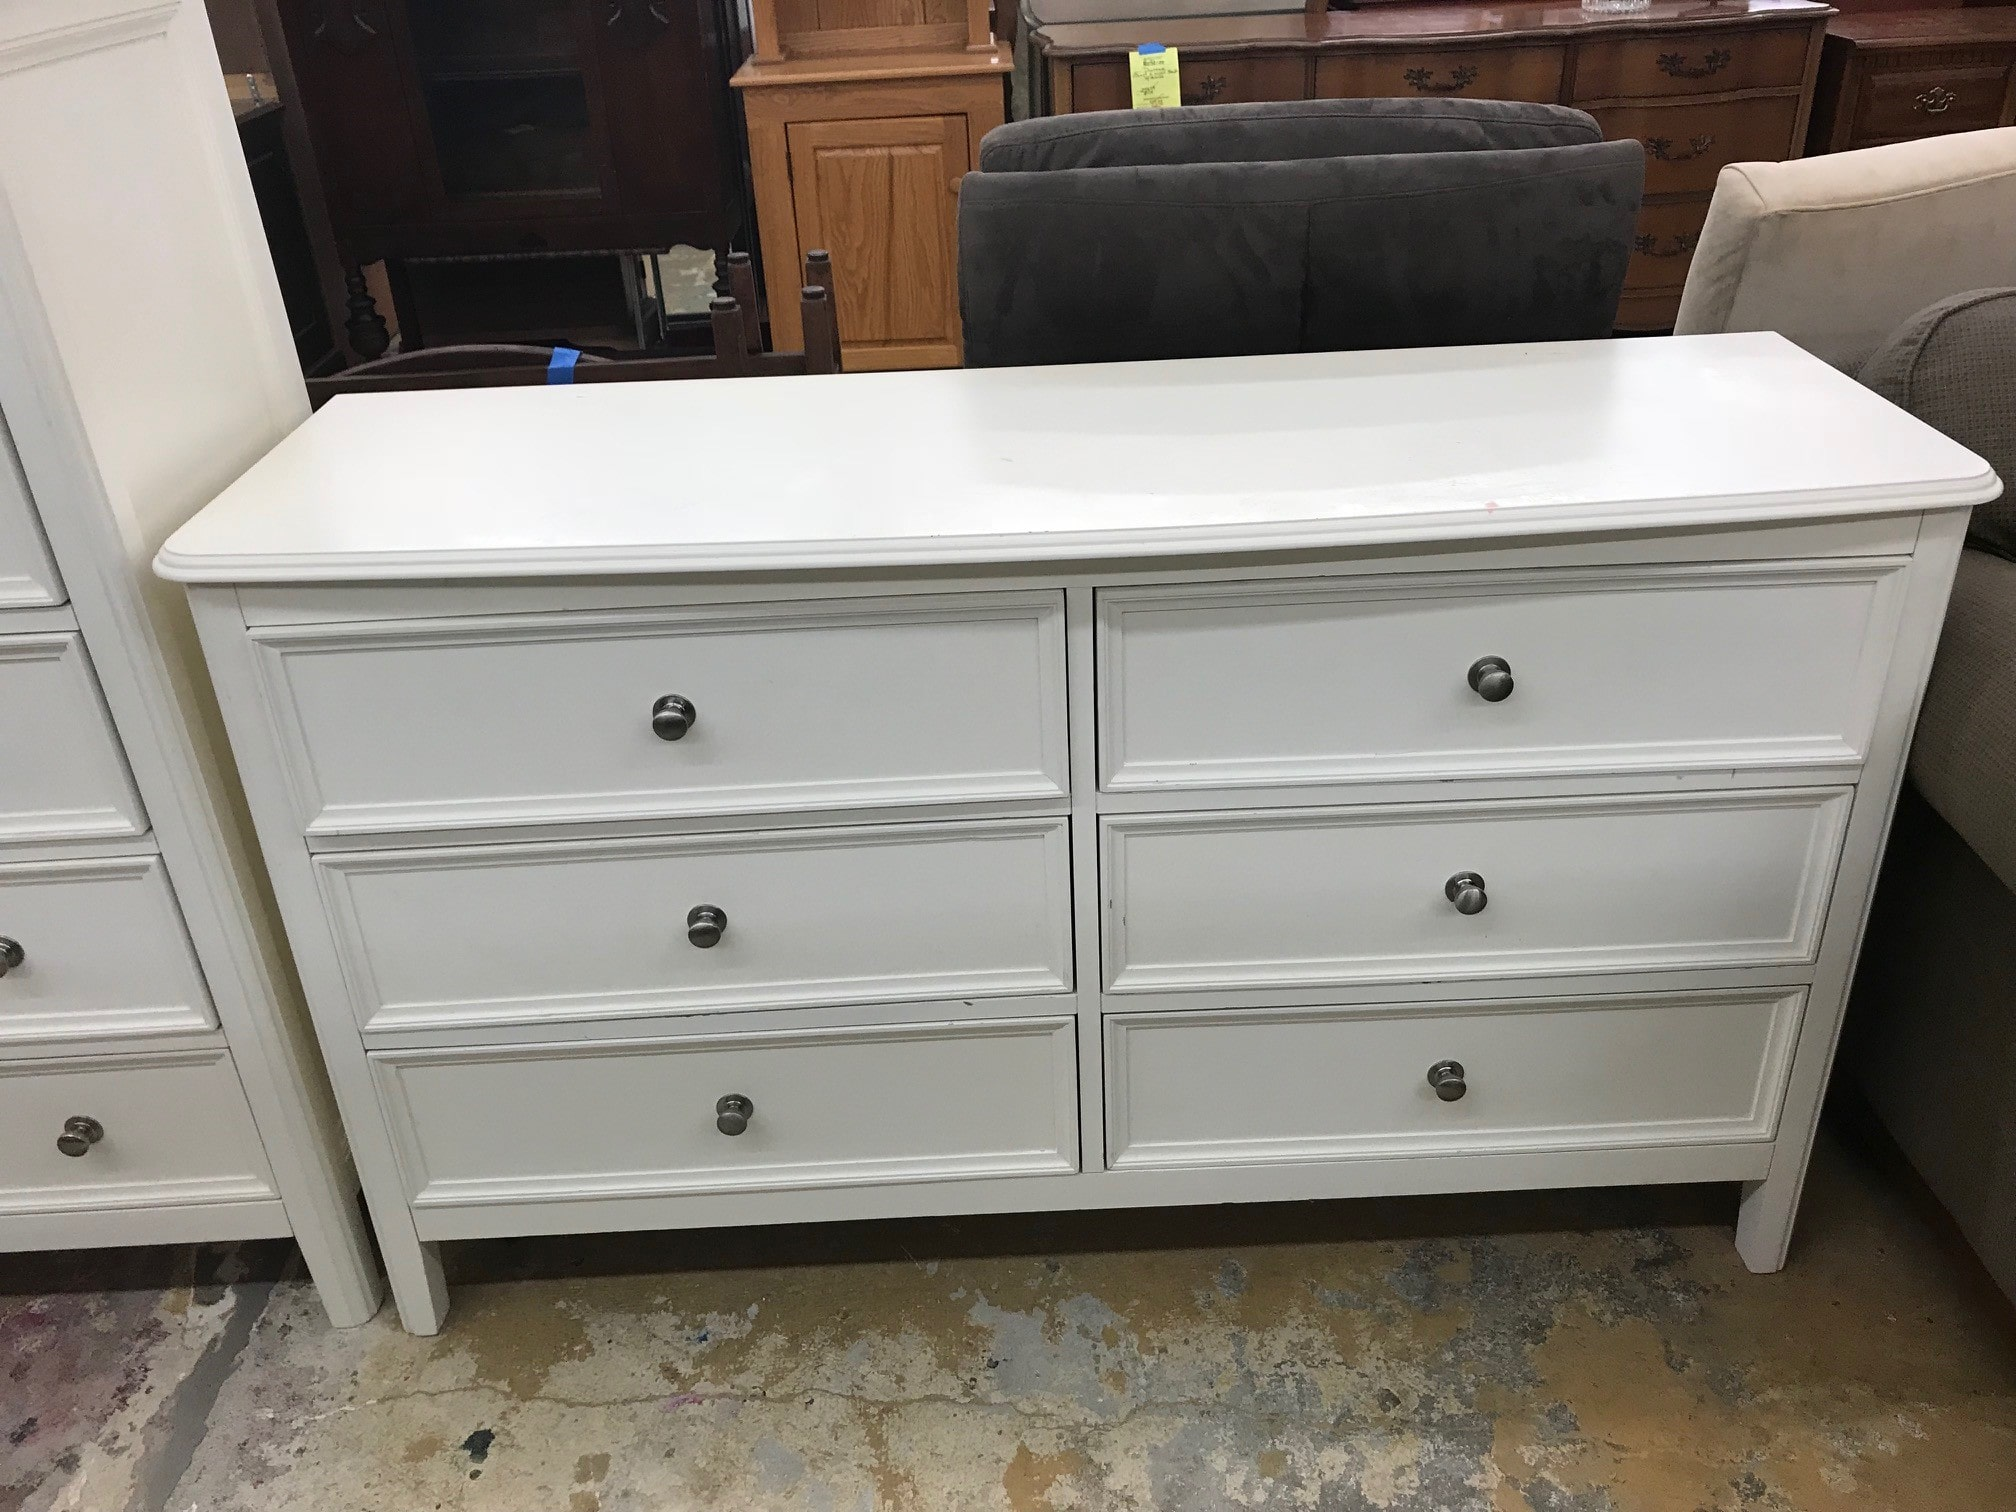 Habitat ReStore Bergen NJ - Furniture for Sale in NJ (23)-min.jpg